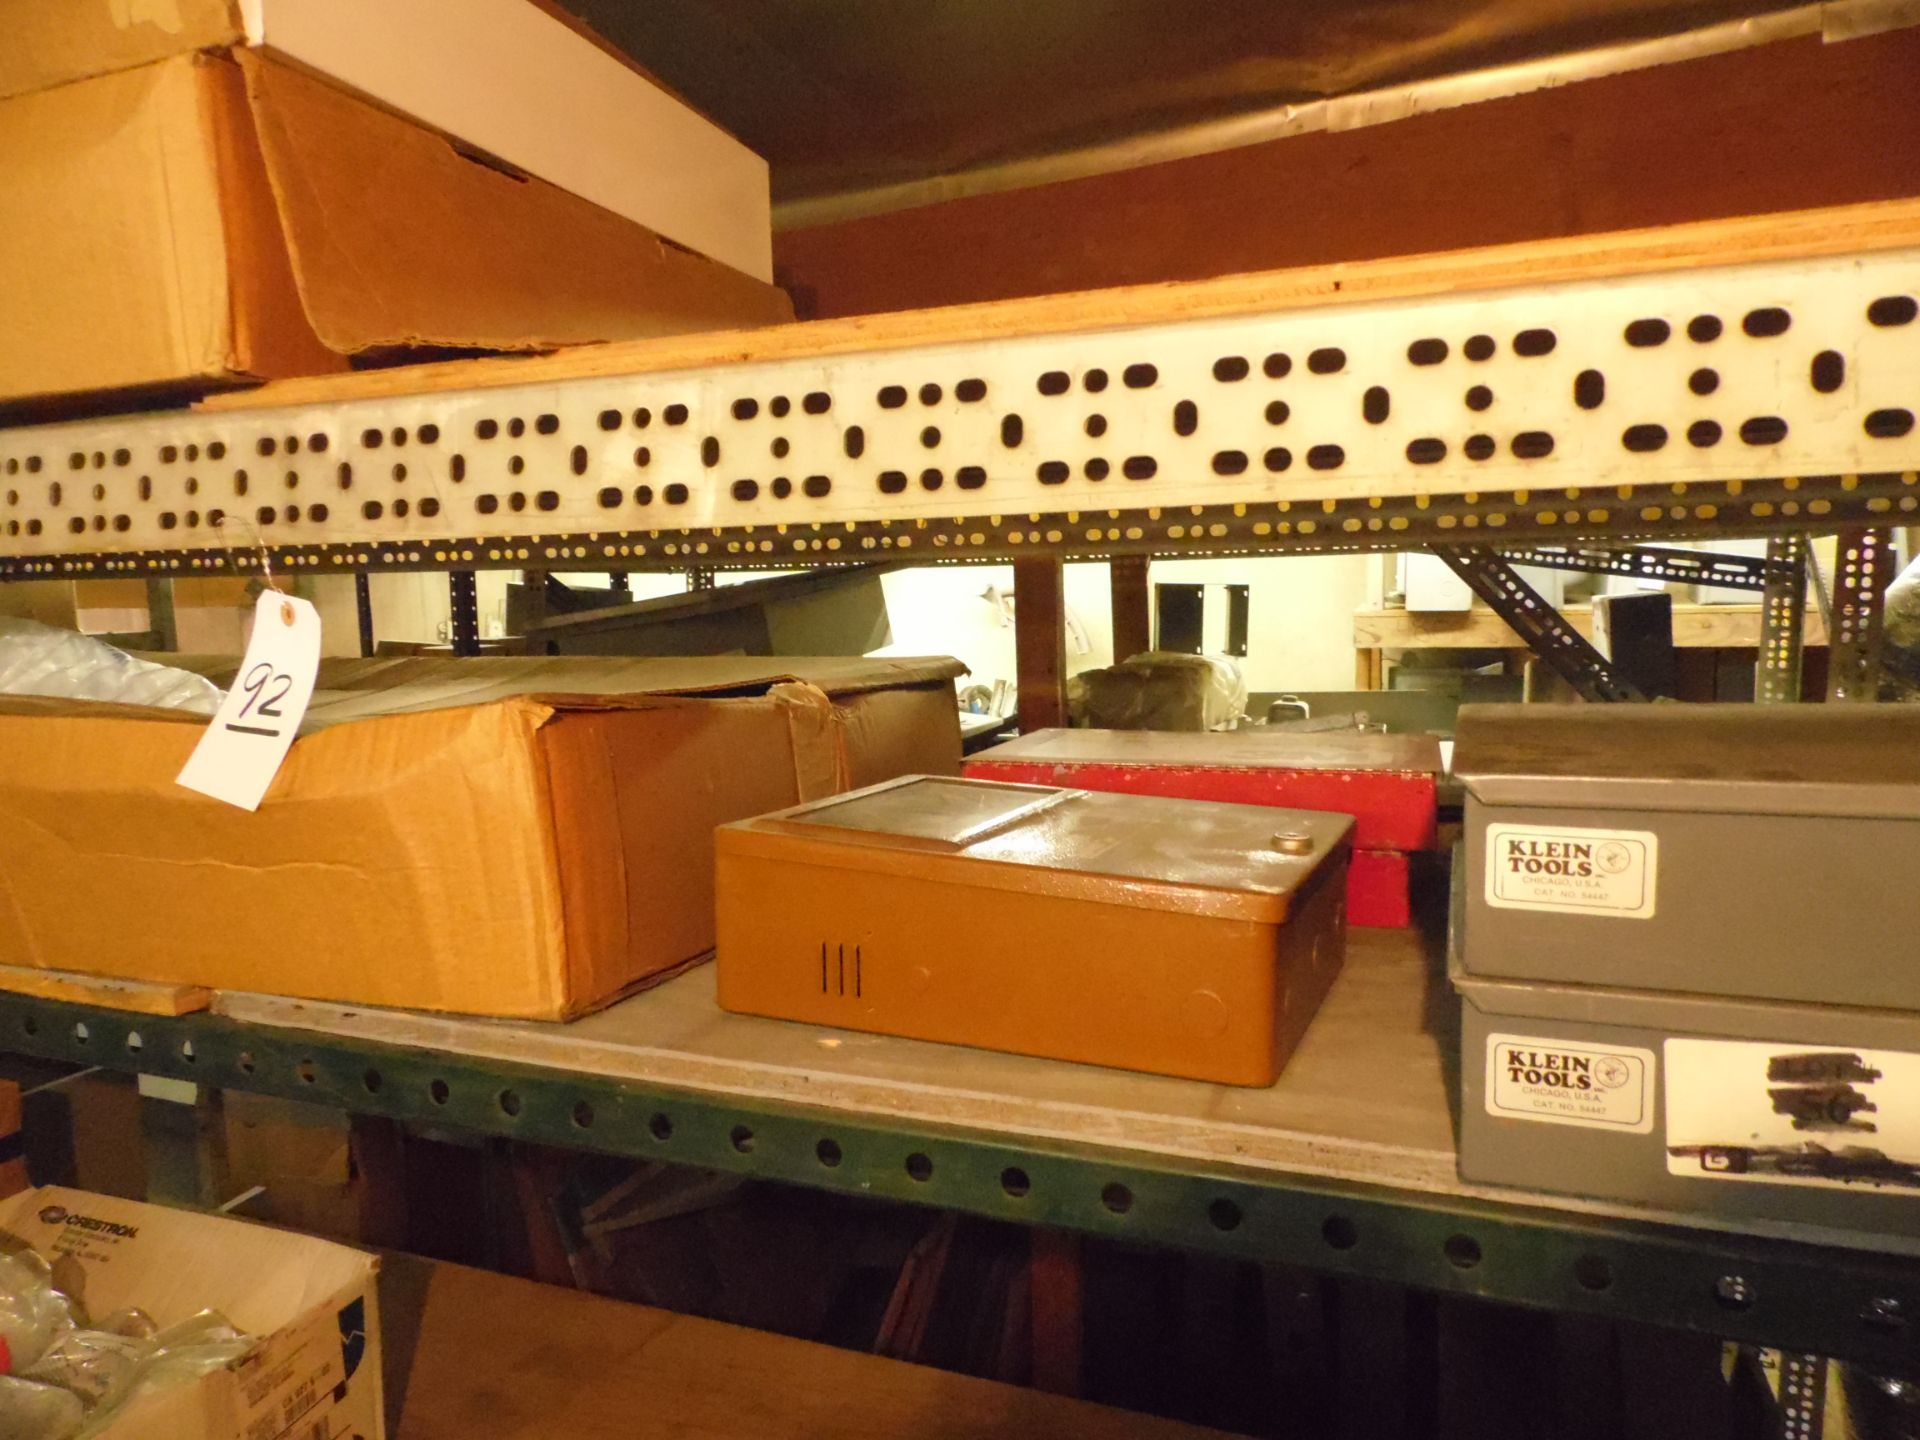 Lot 92 - RACK w/ CONTENTS, NUT / BOLT CABINETS